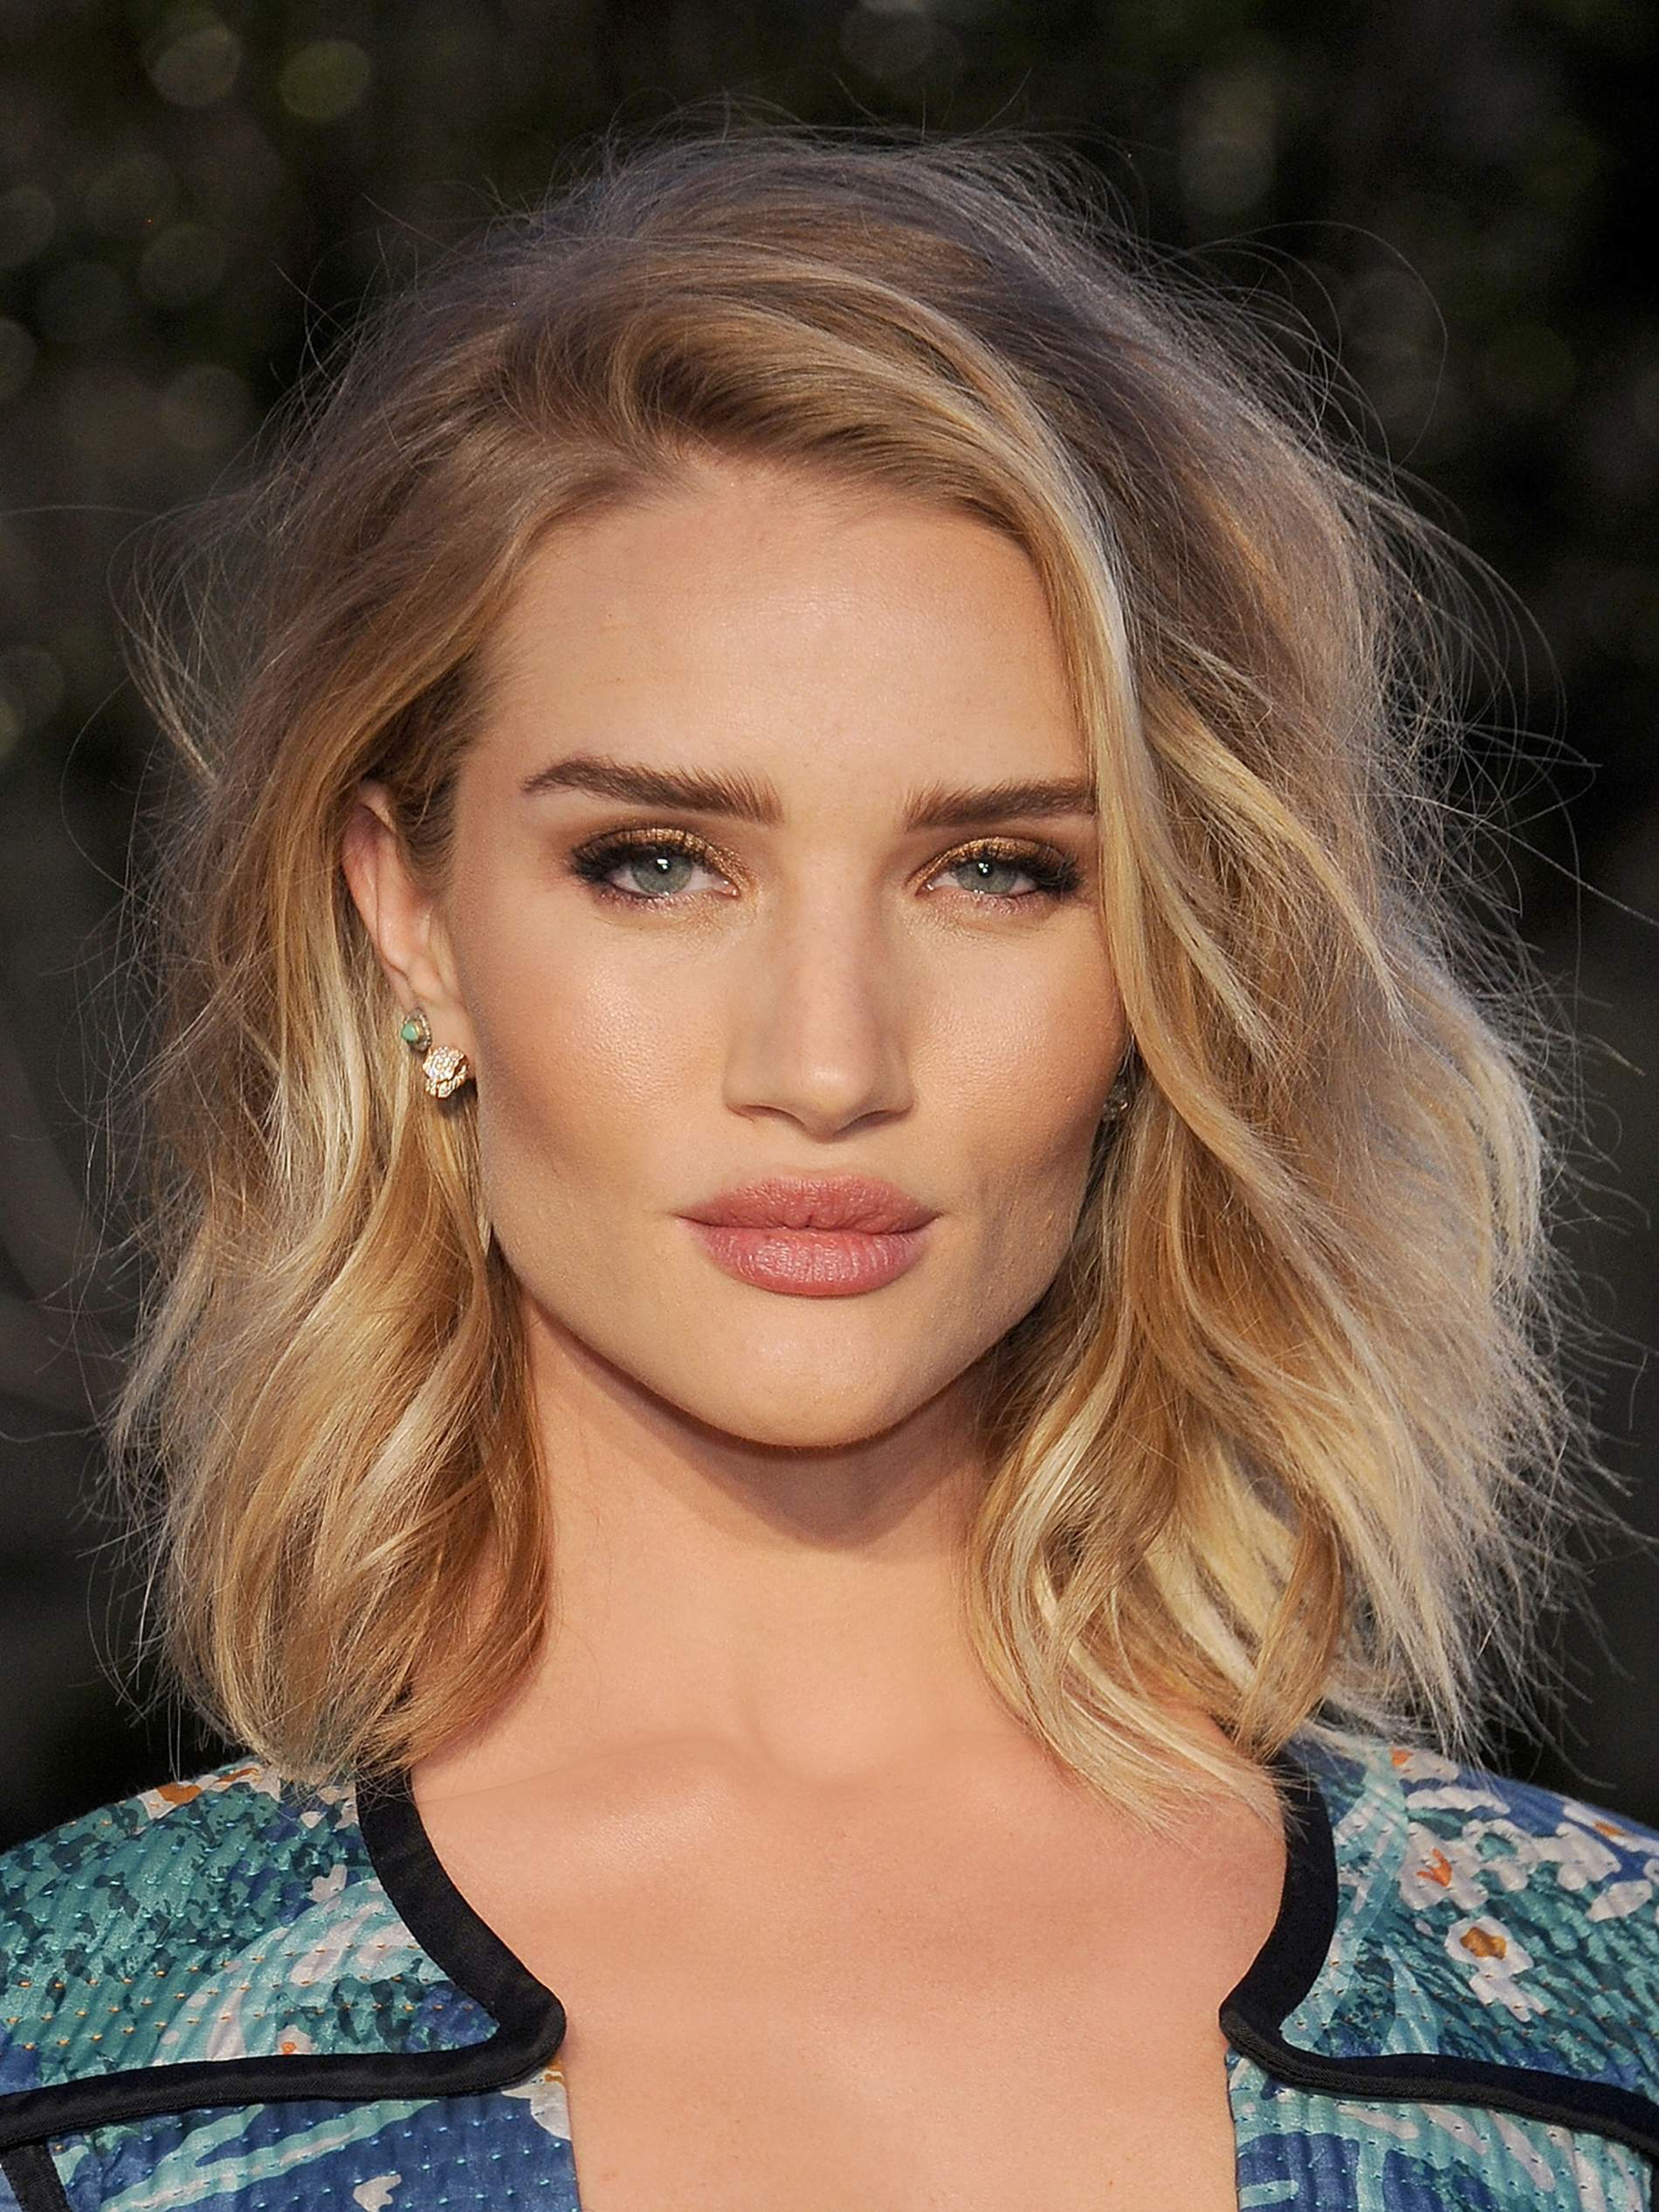 Rosie Huntington-Whiteley Continues Her Amazing World Tour